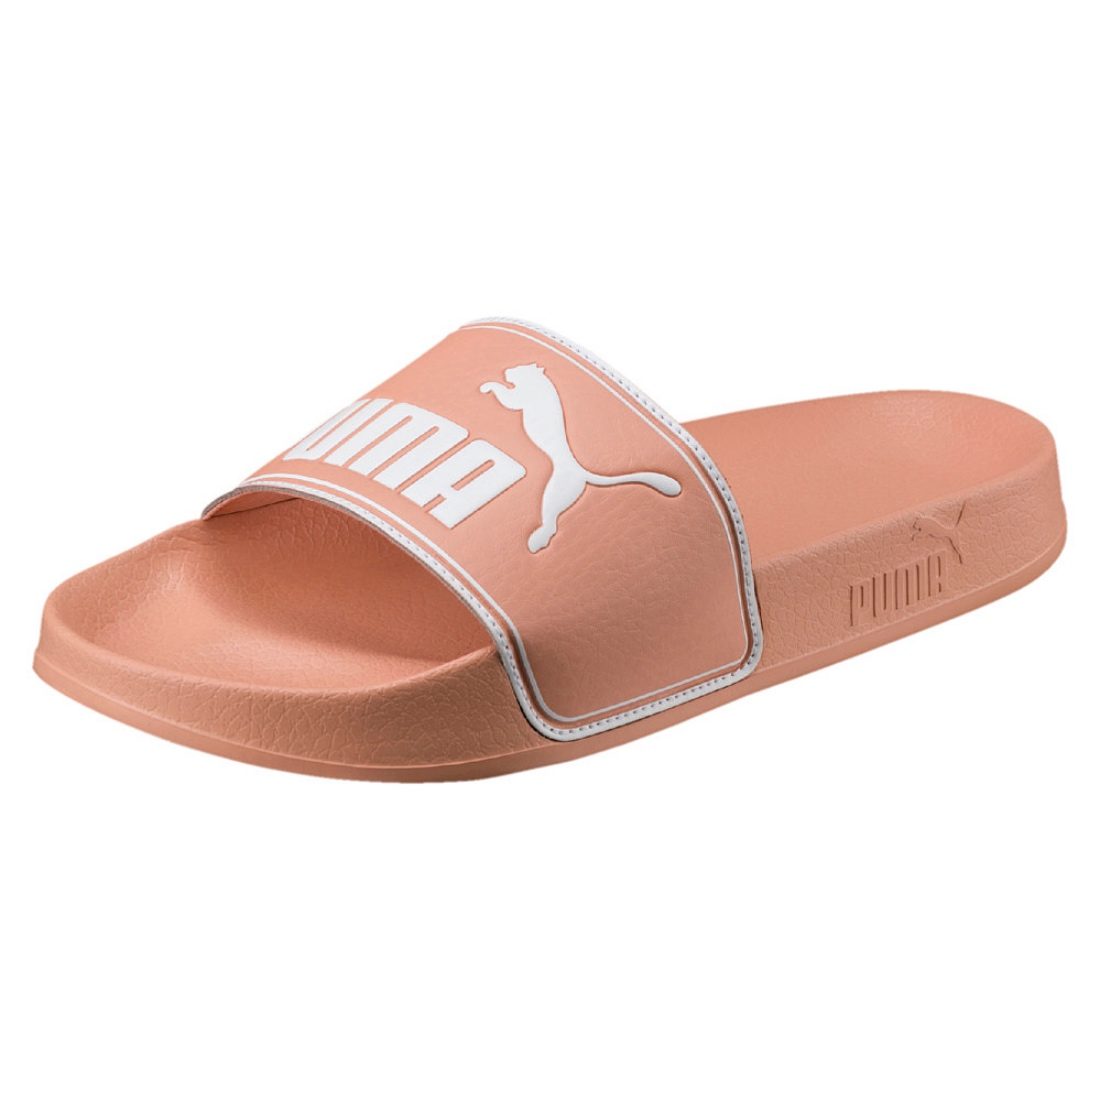 f6d46379ed7 Details about Puma Beach Sandals Slippers Leadcat 360263 Muted Clay